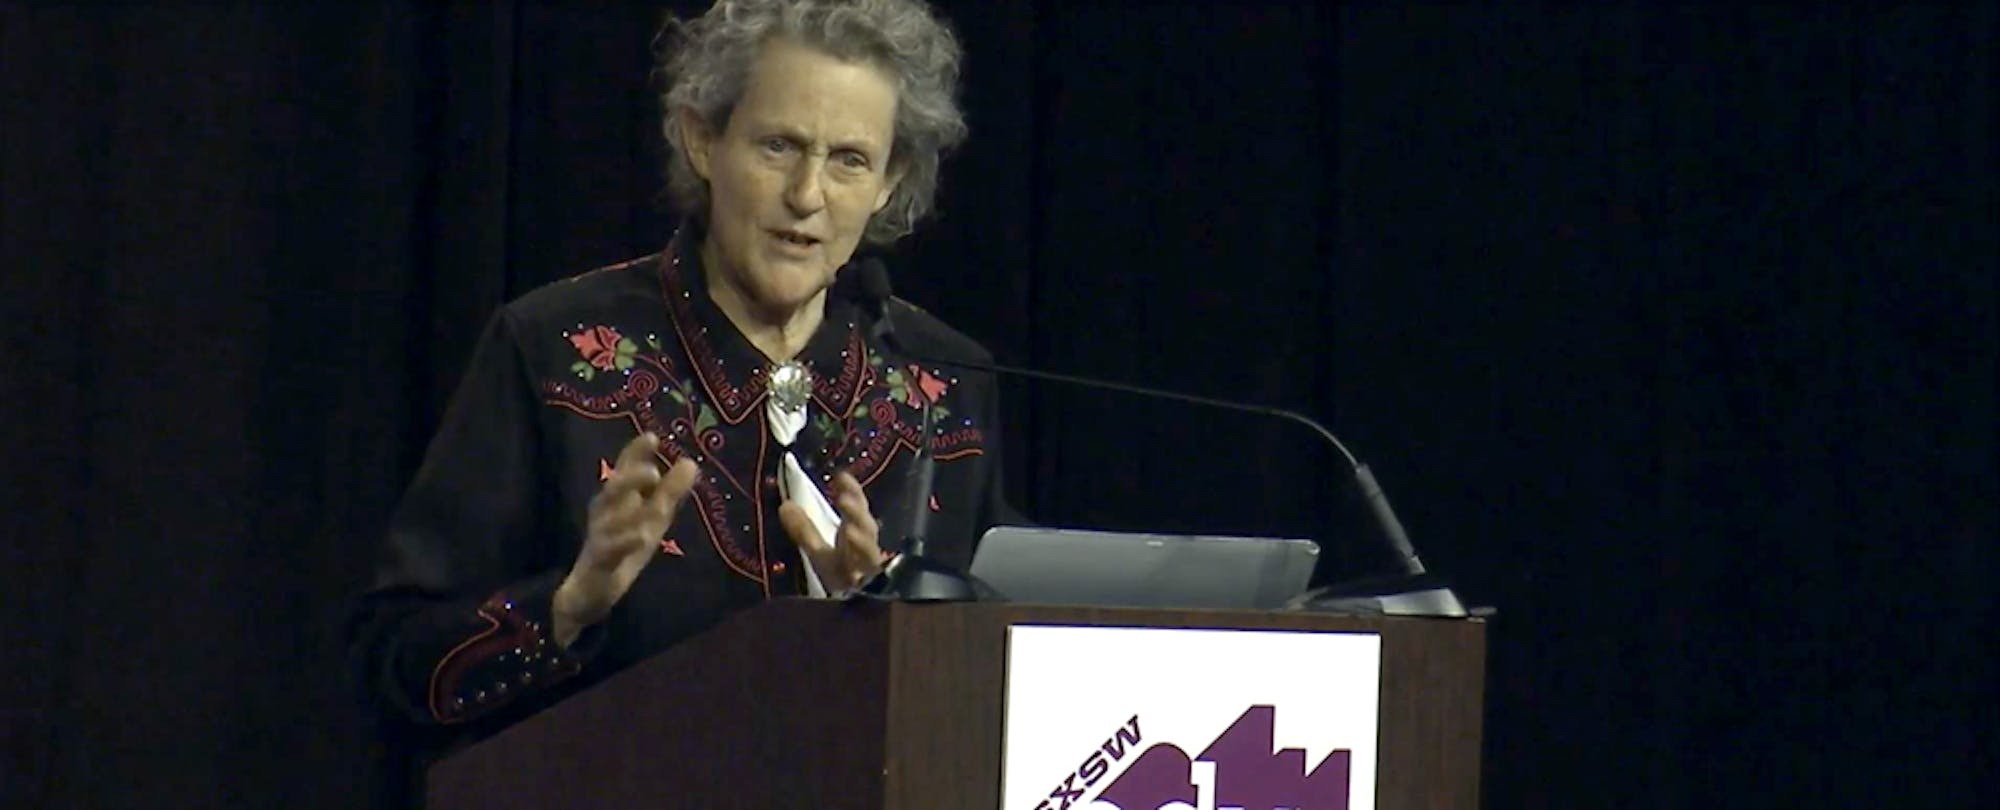 SXSWedu's Opening Keynote, Temple Grandin, Revisits 'Learning Styles'